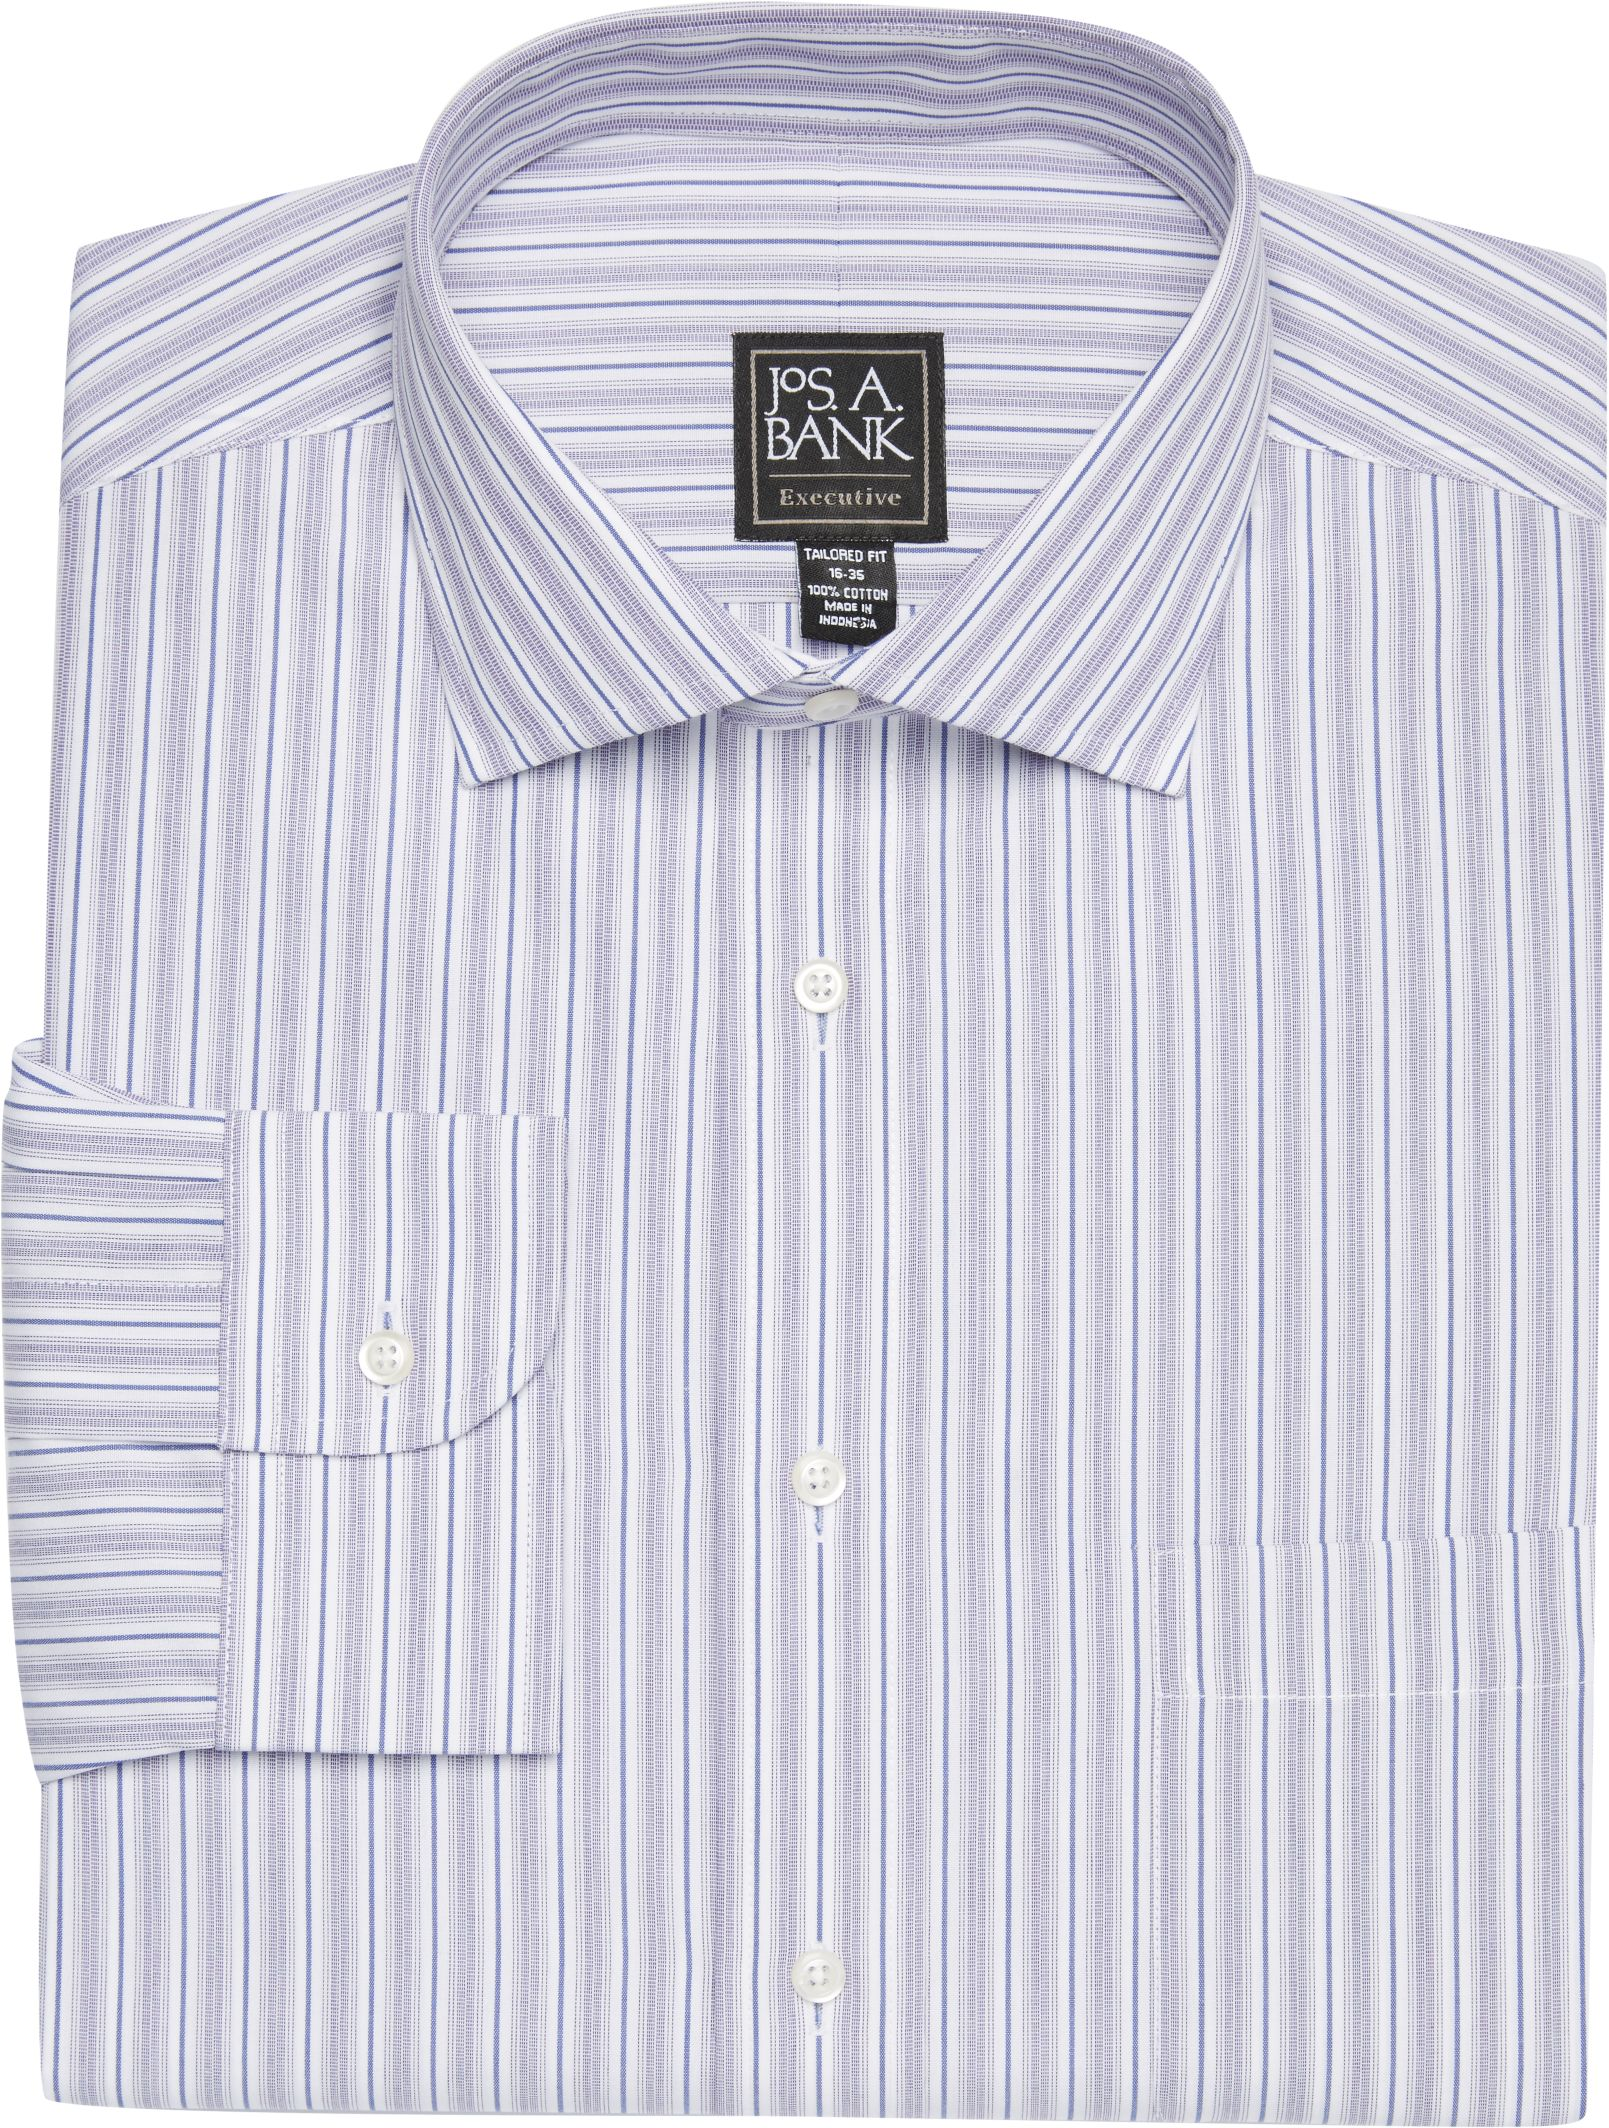 29a50ef664c5 Executive Collection Tailored Fit Spread Collar Stripe Dress Shirt  CLEARANCE Non Iron Shirts, Stripe Dress